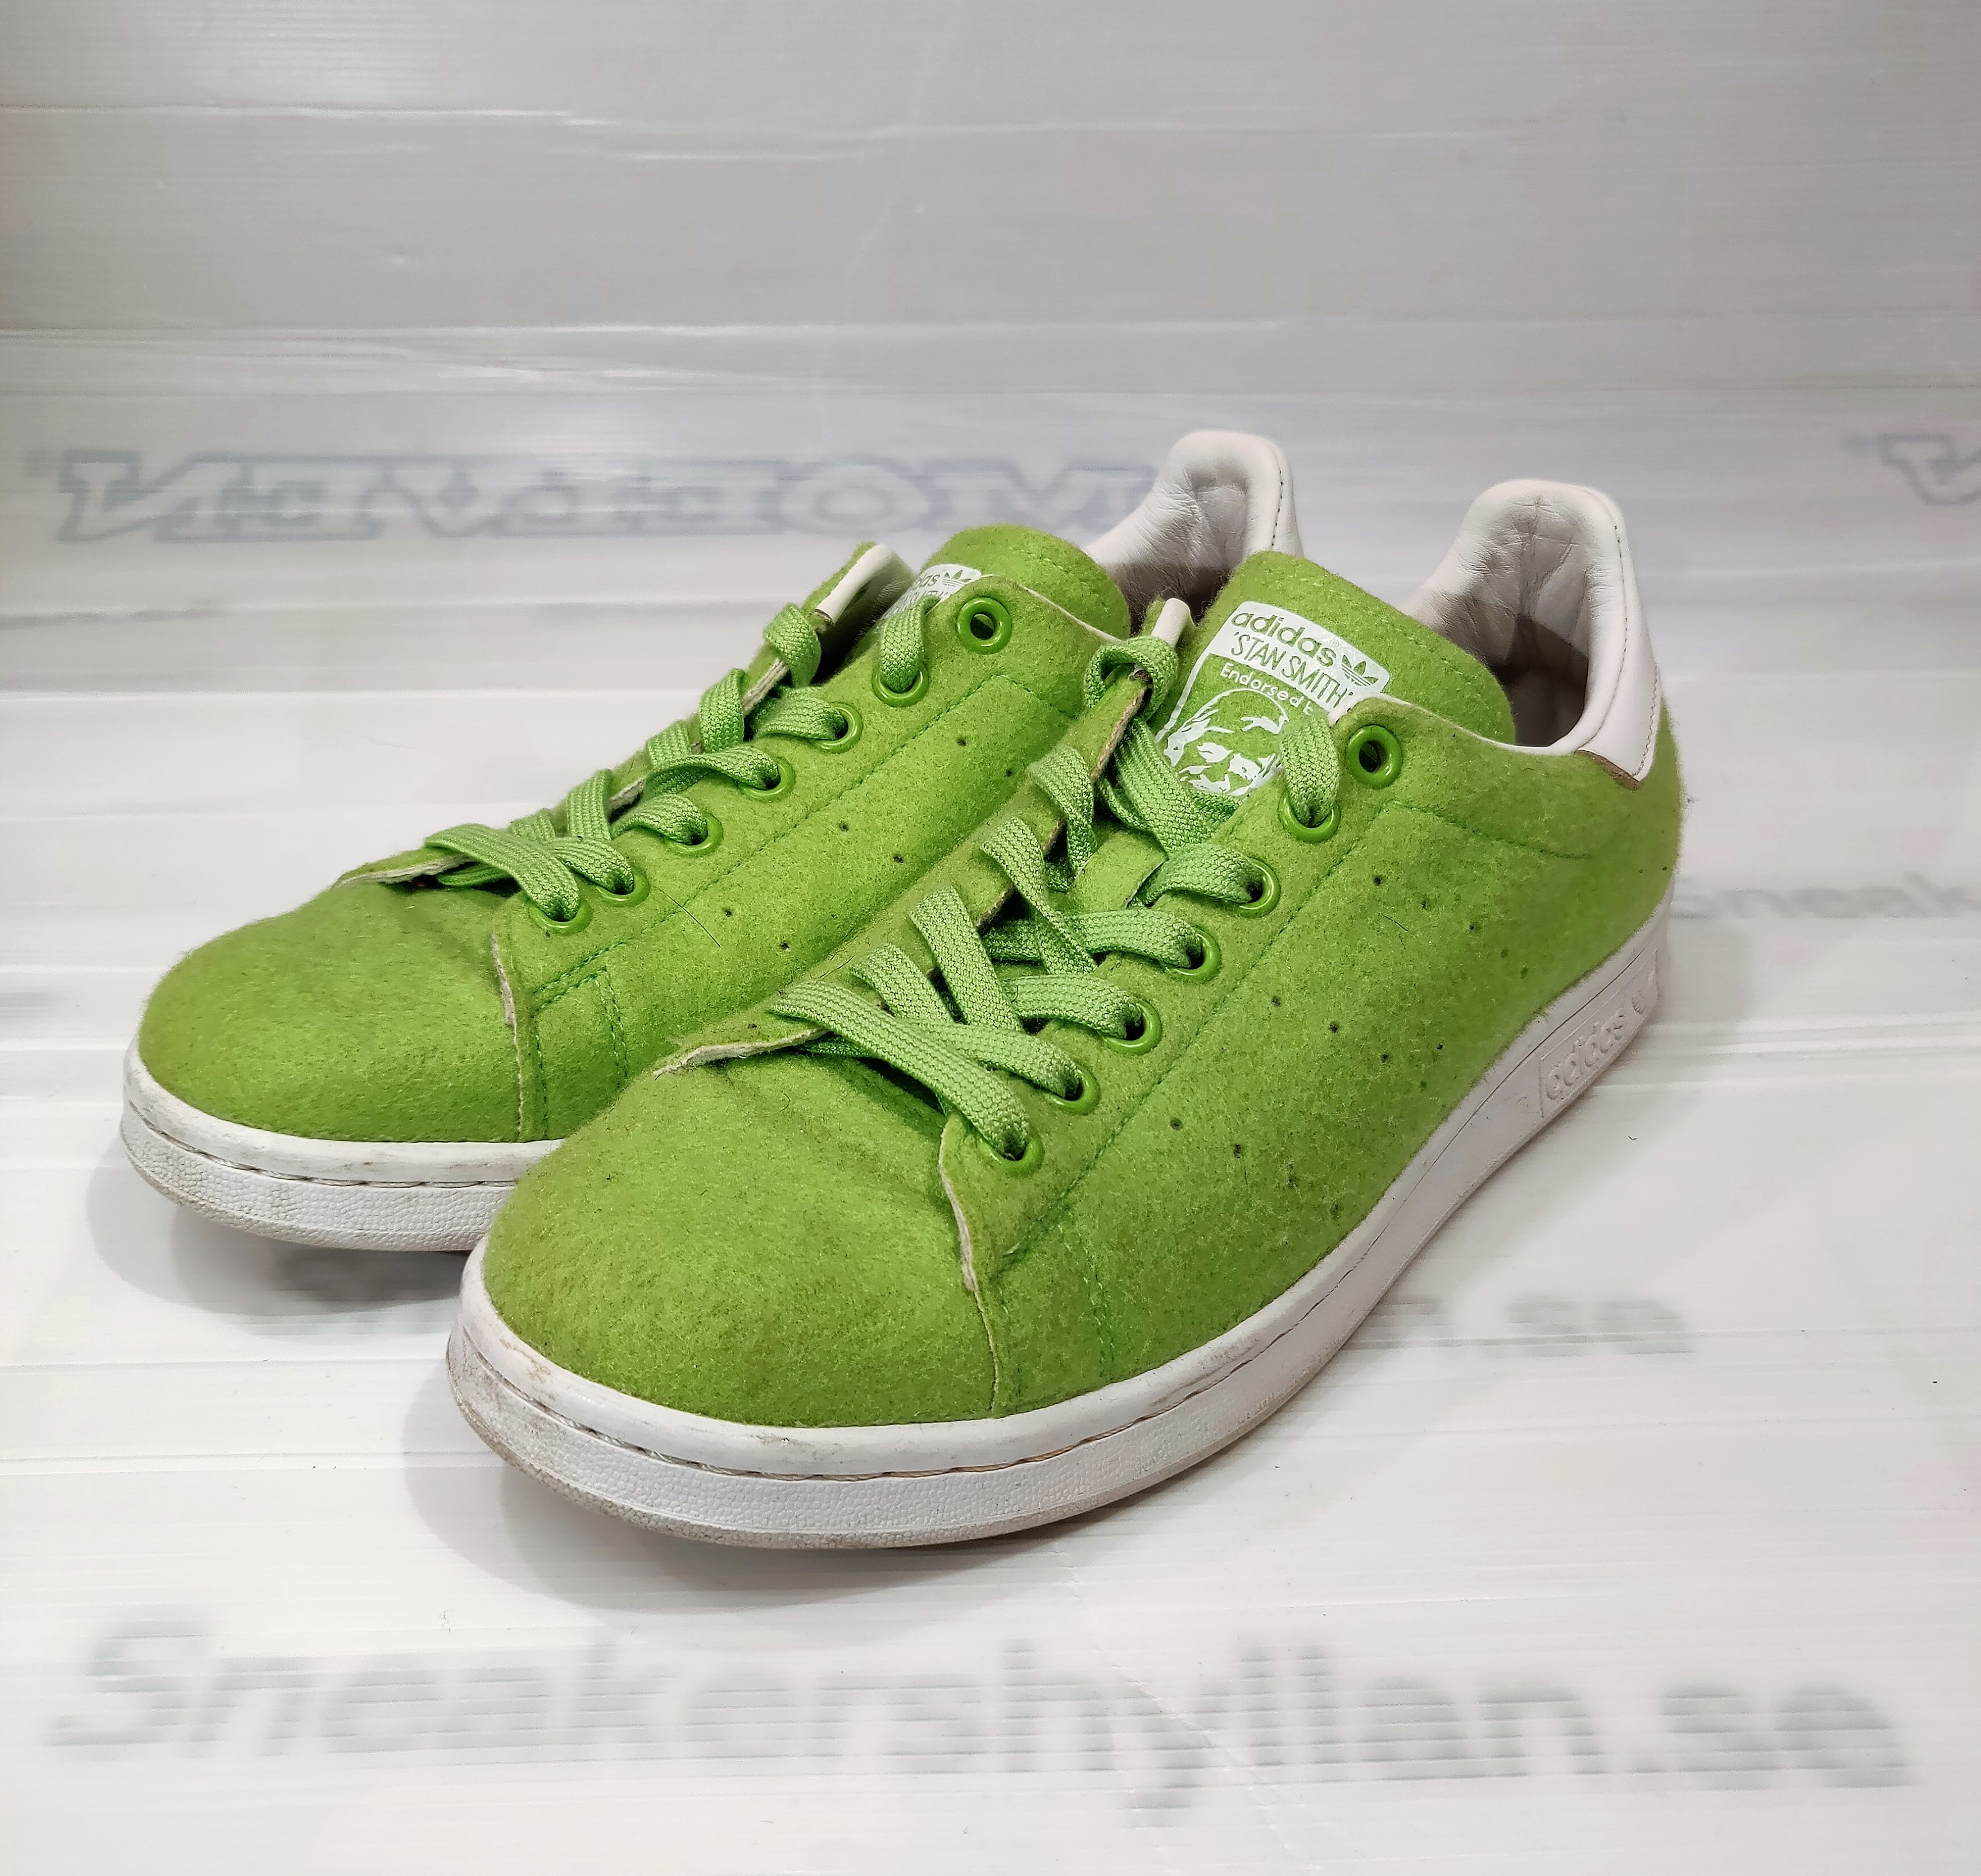 Adidas Stan Smith Tennis Shoe